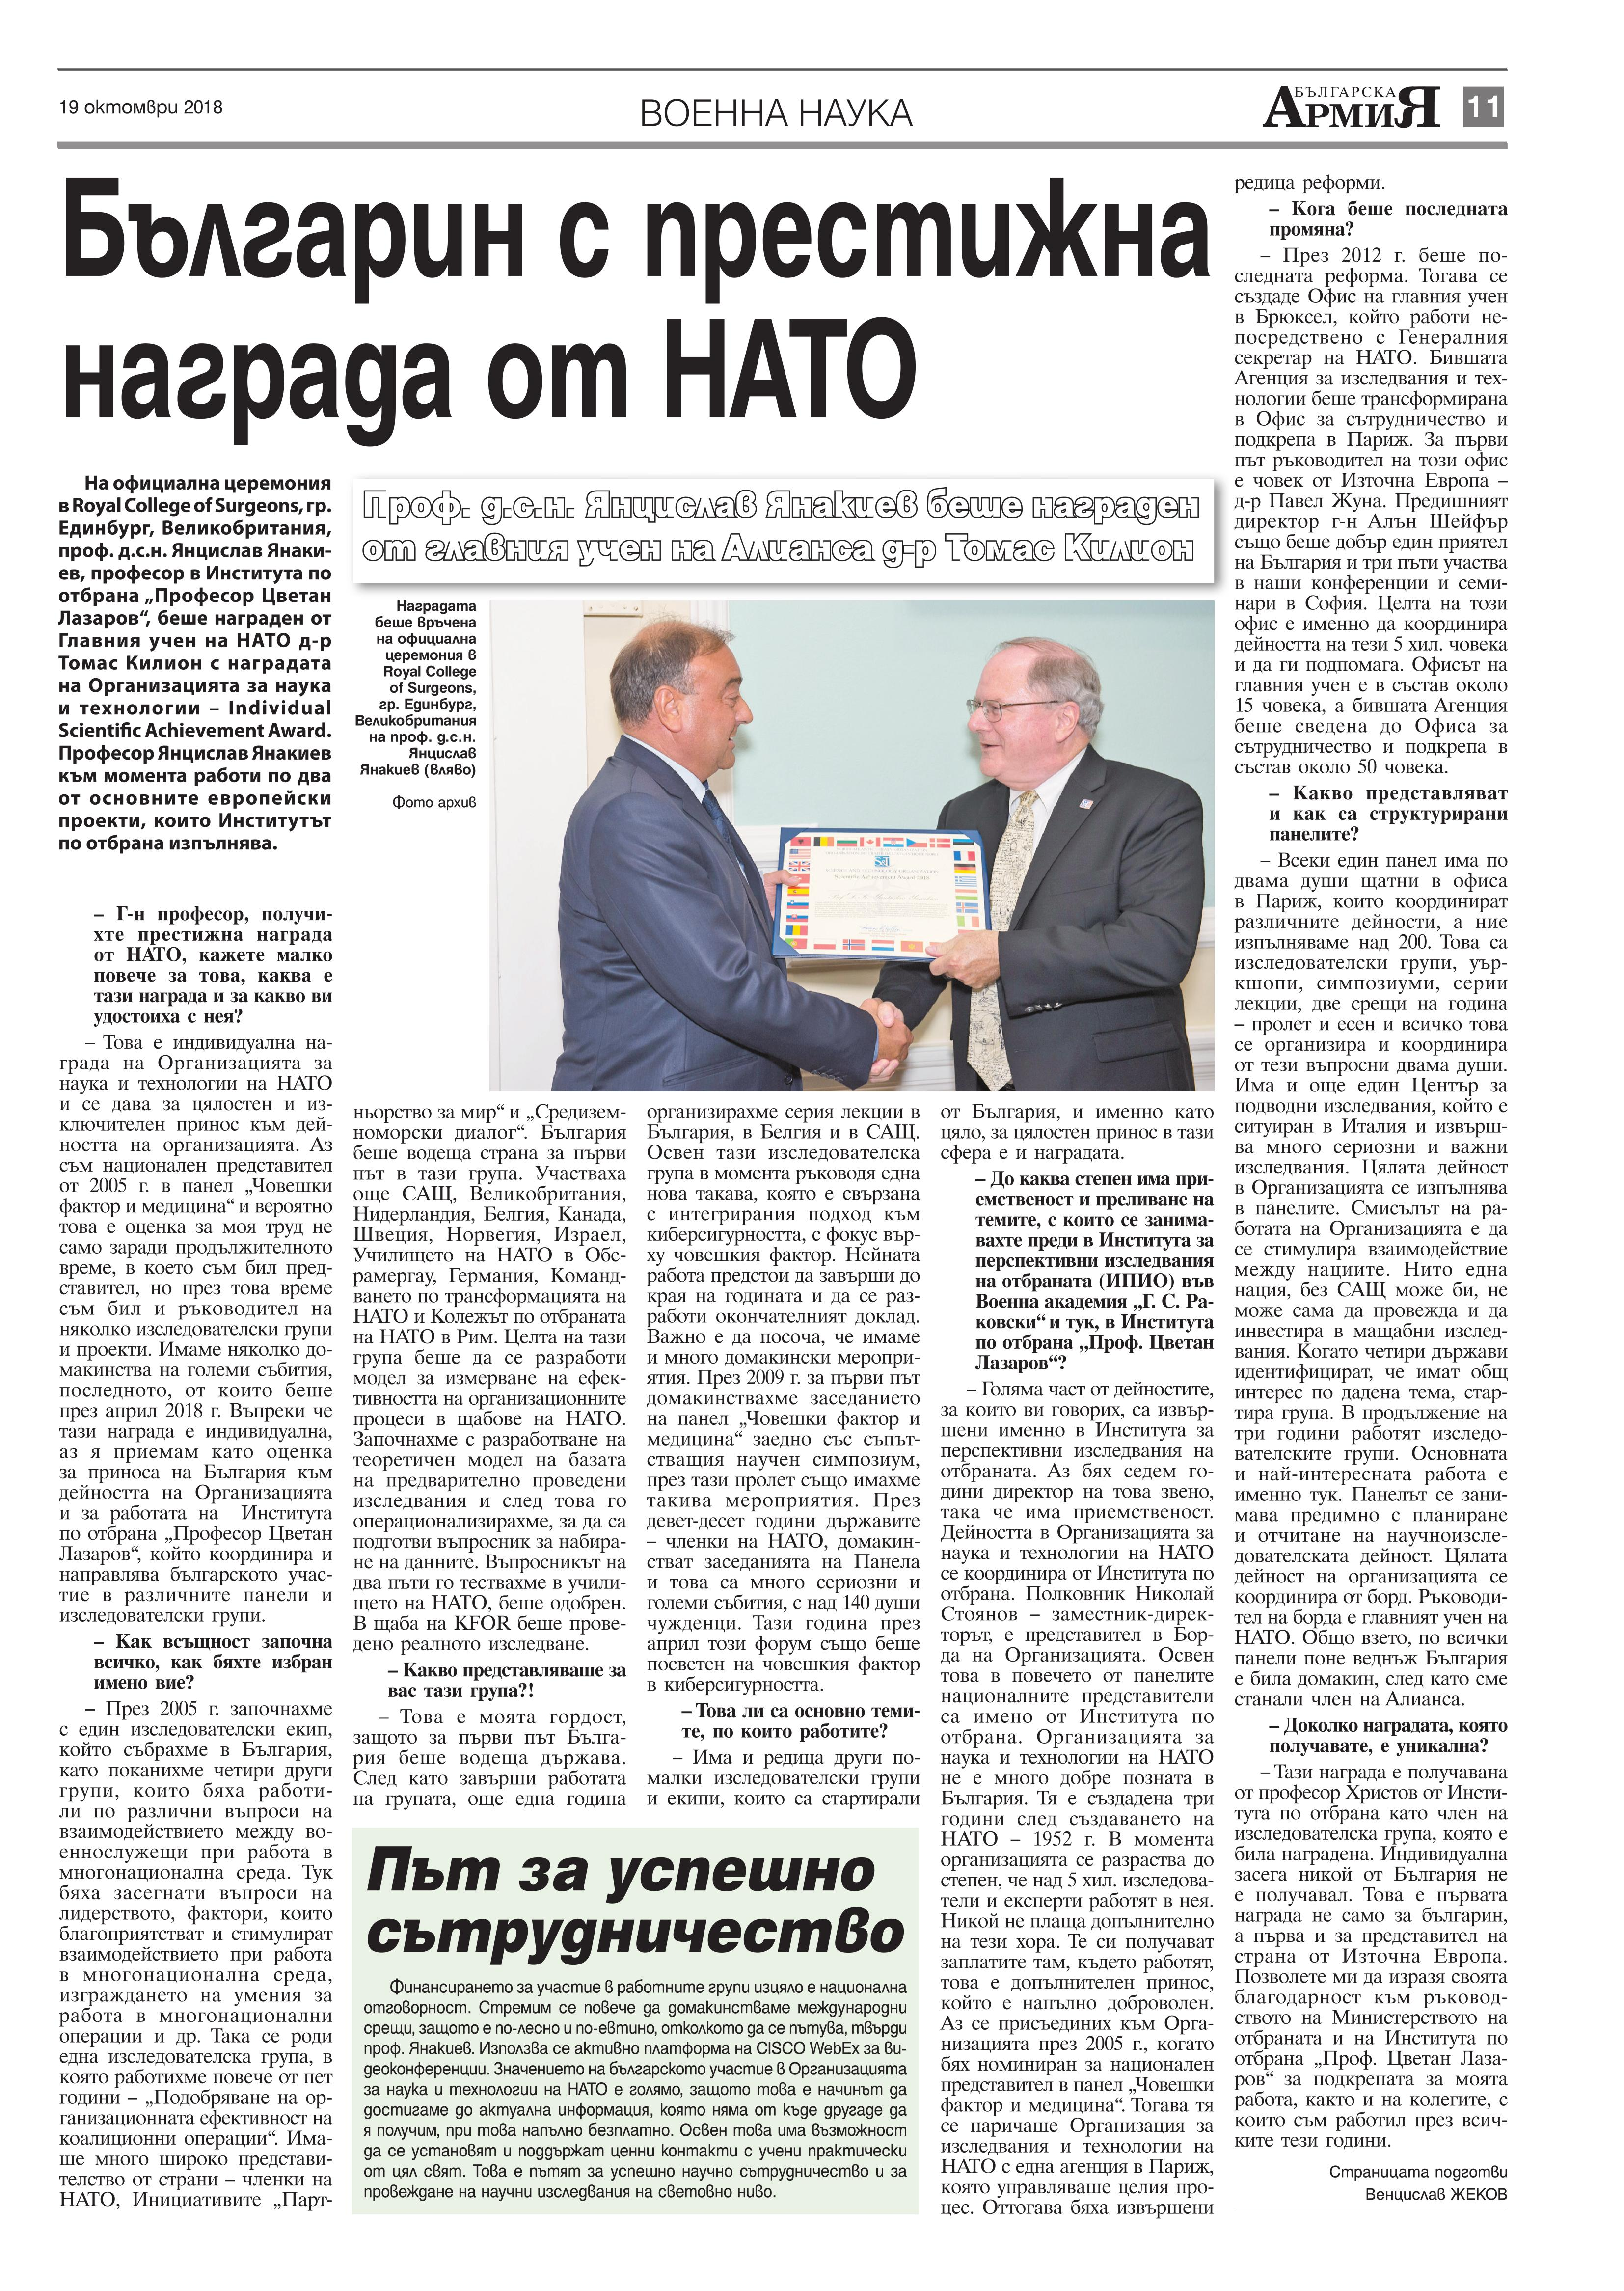 https://armymedia.bg/wp-content/uploads/2015/06/11.page1_-70.jpg